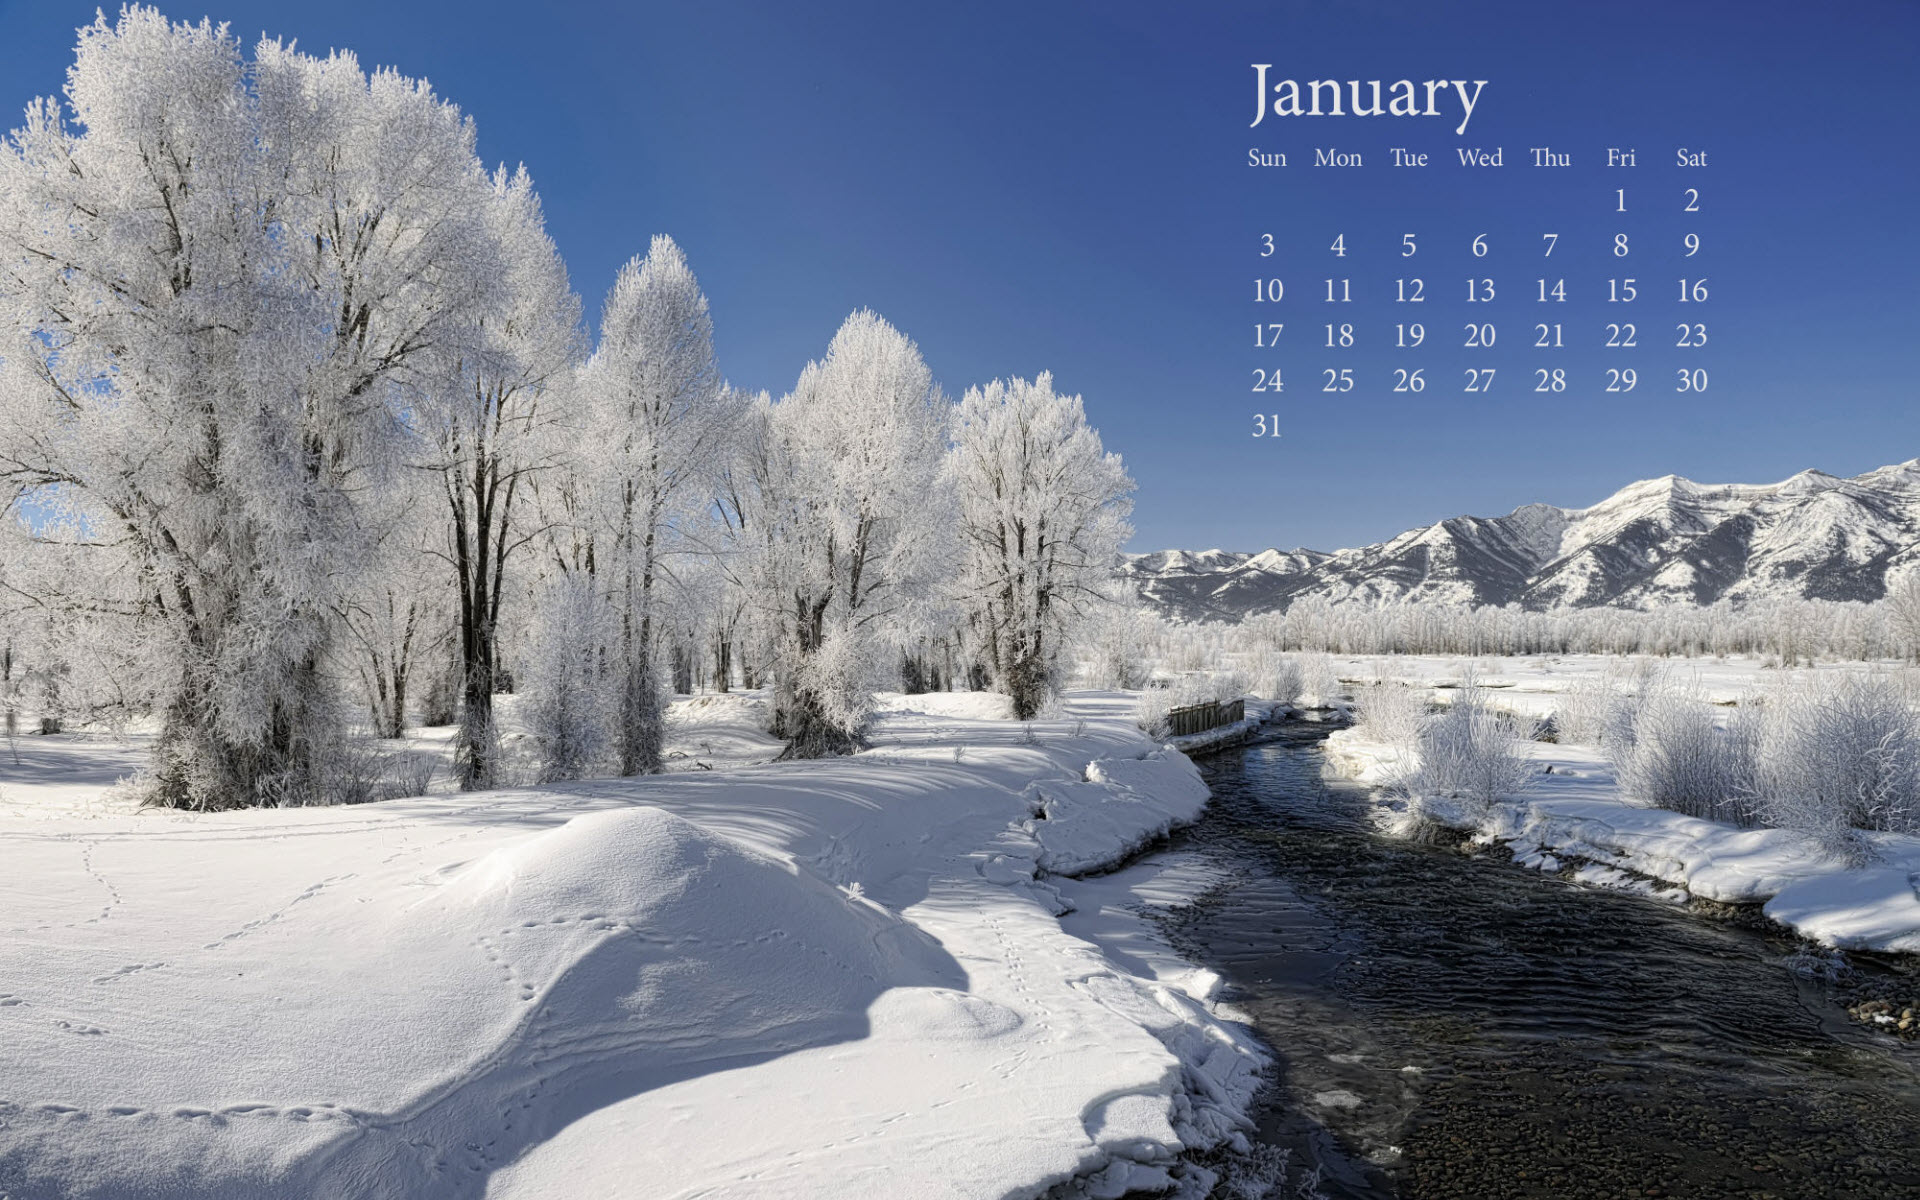 Fresh Snow January 2010 Calender Wallpapers HD Wallpapers 1920x1200